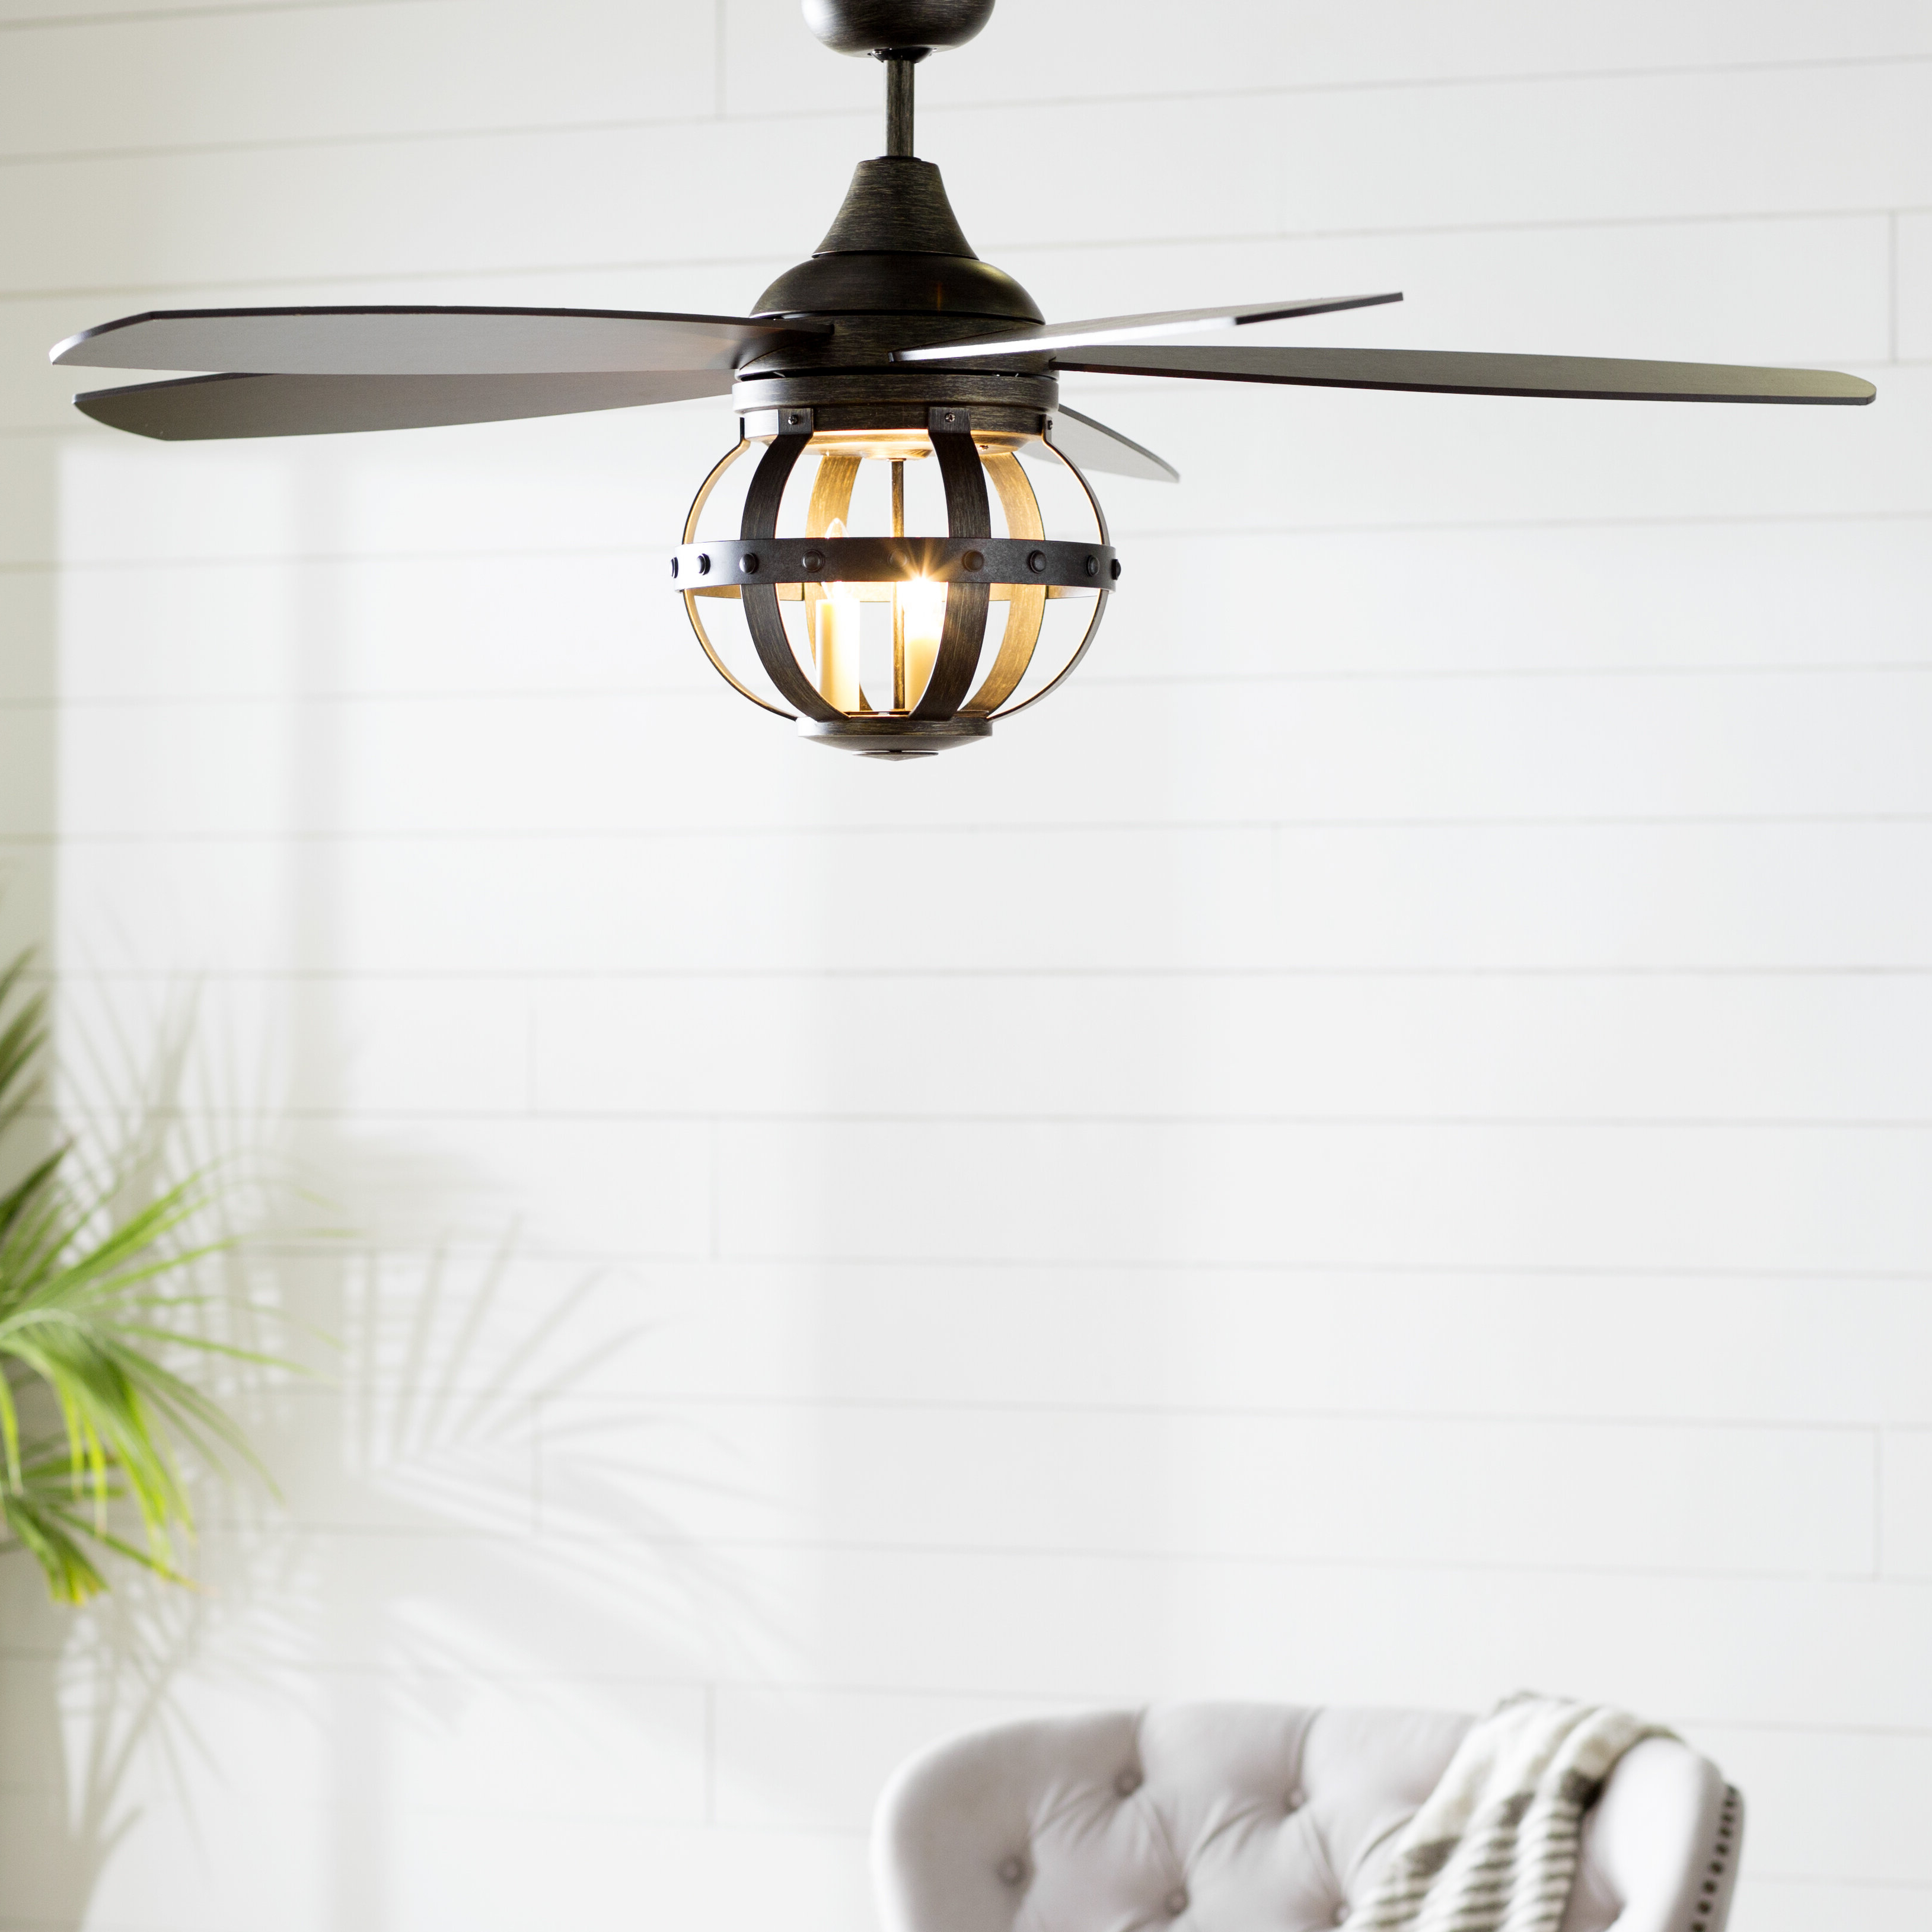 """52"""" Wilburton 5 Blade Ceiling Fan With Remote, Light Kit Included Throughout Trendy Rainman 5 Blade Outdoor Ceiling Fans (View 3 of 20)"""